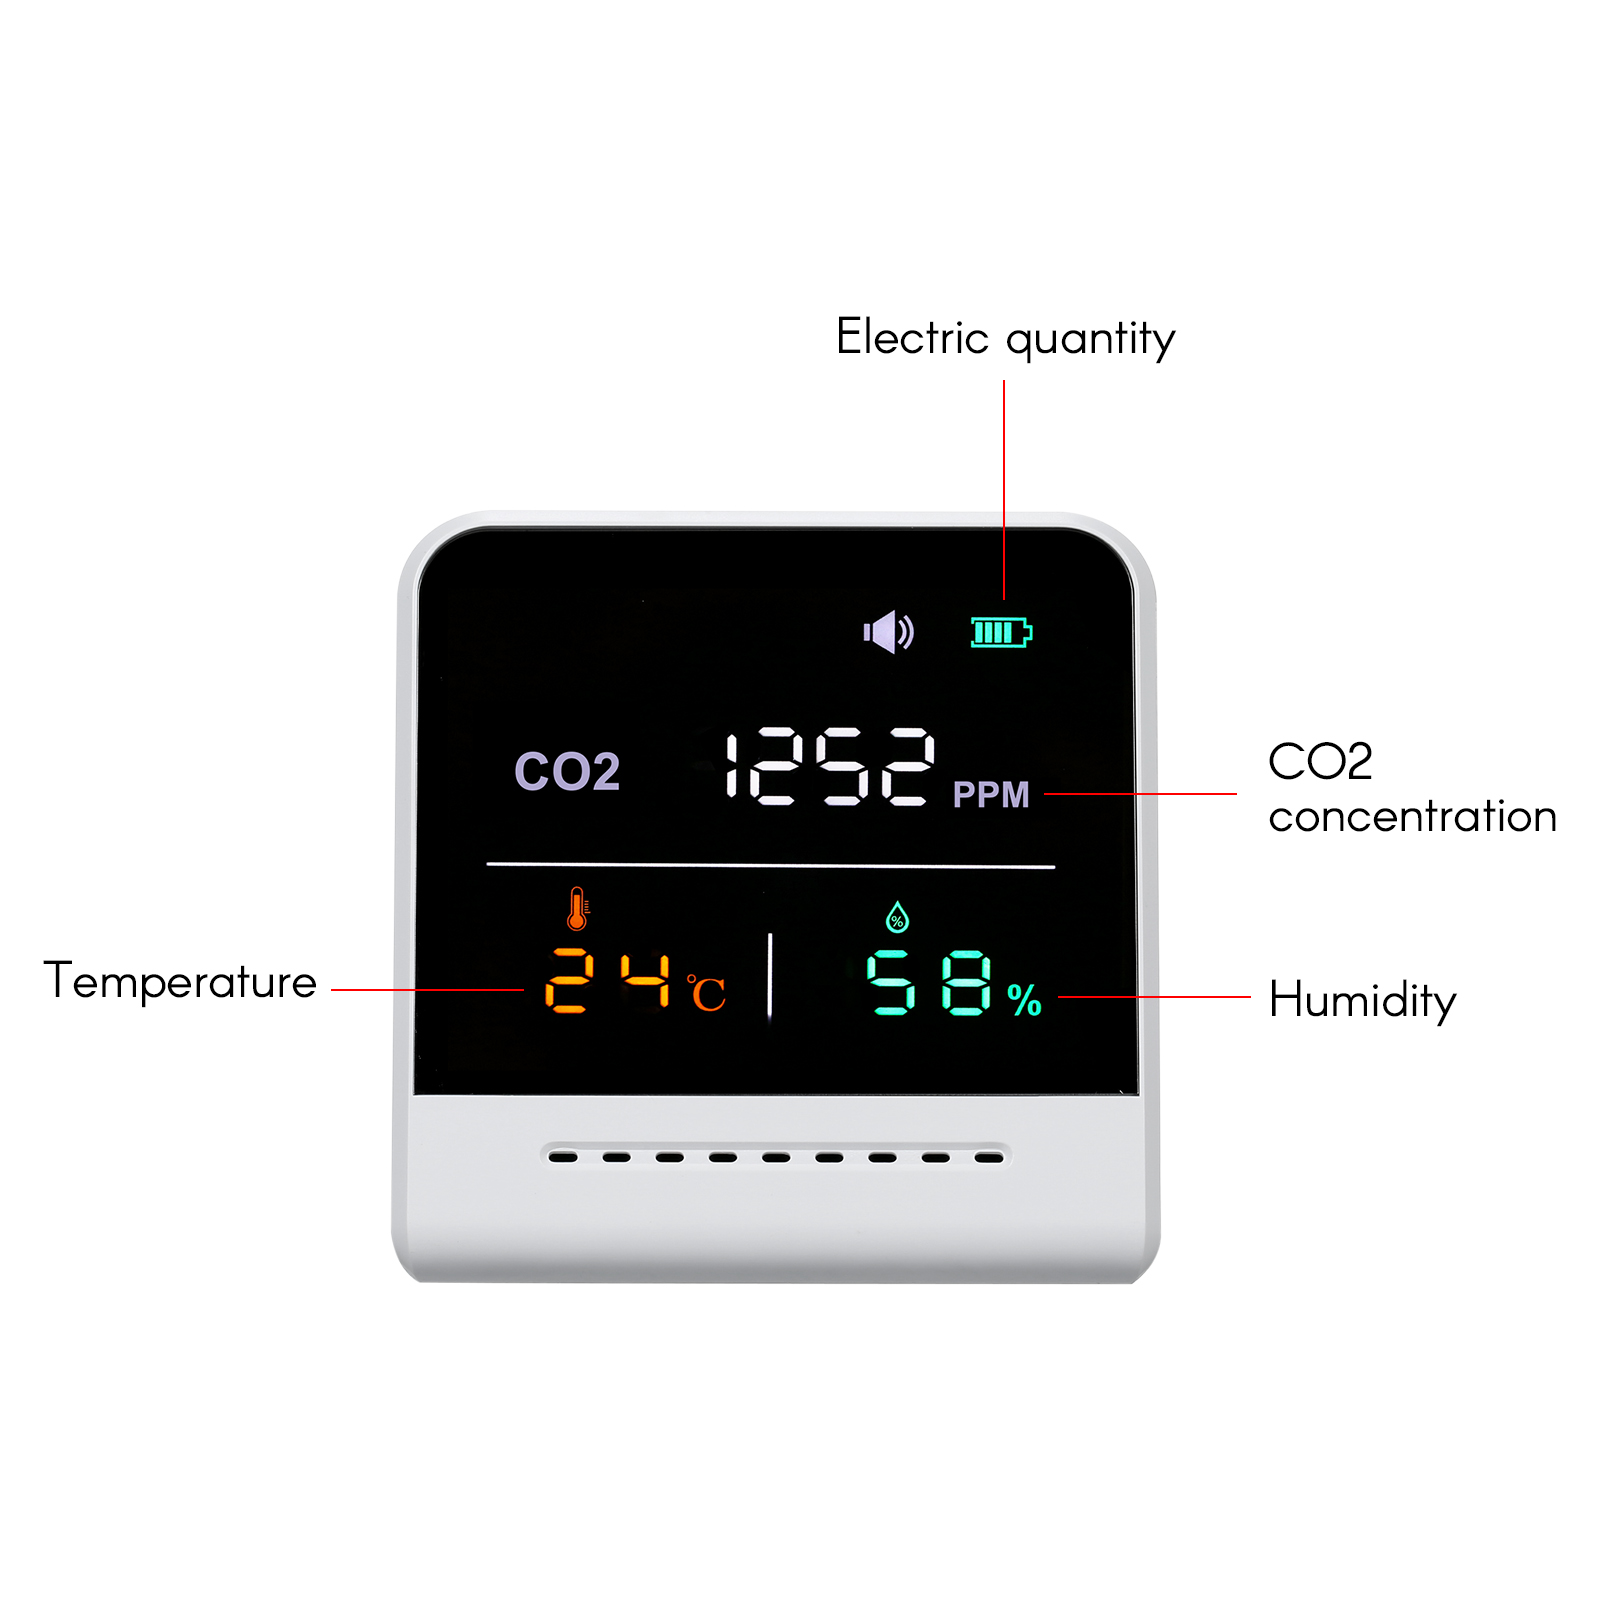 Details about  /Carbon Dioxide Detector CO2 Temperature Humidity Tester Air Monitor LCD Display